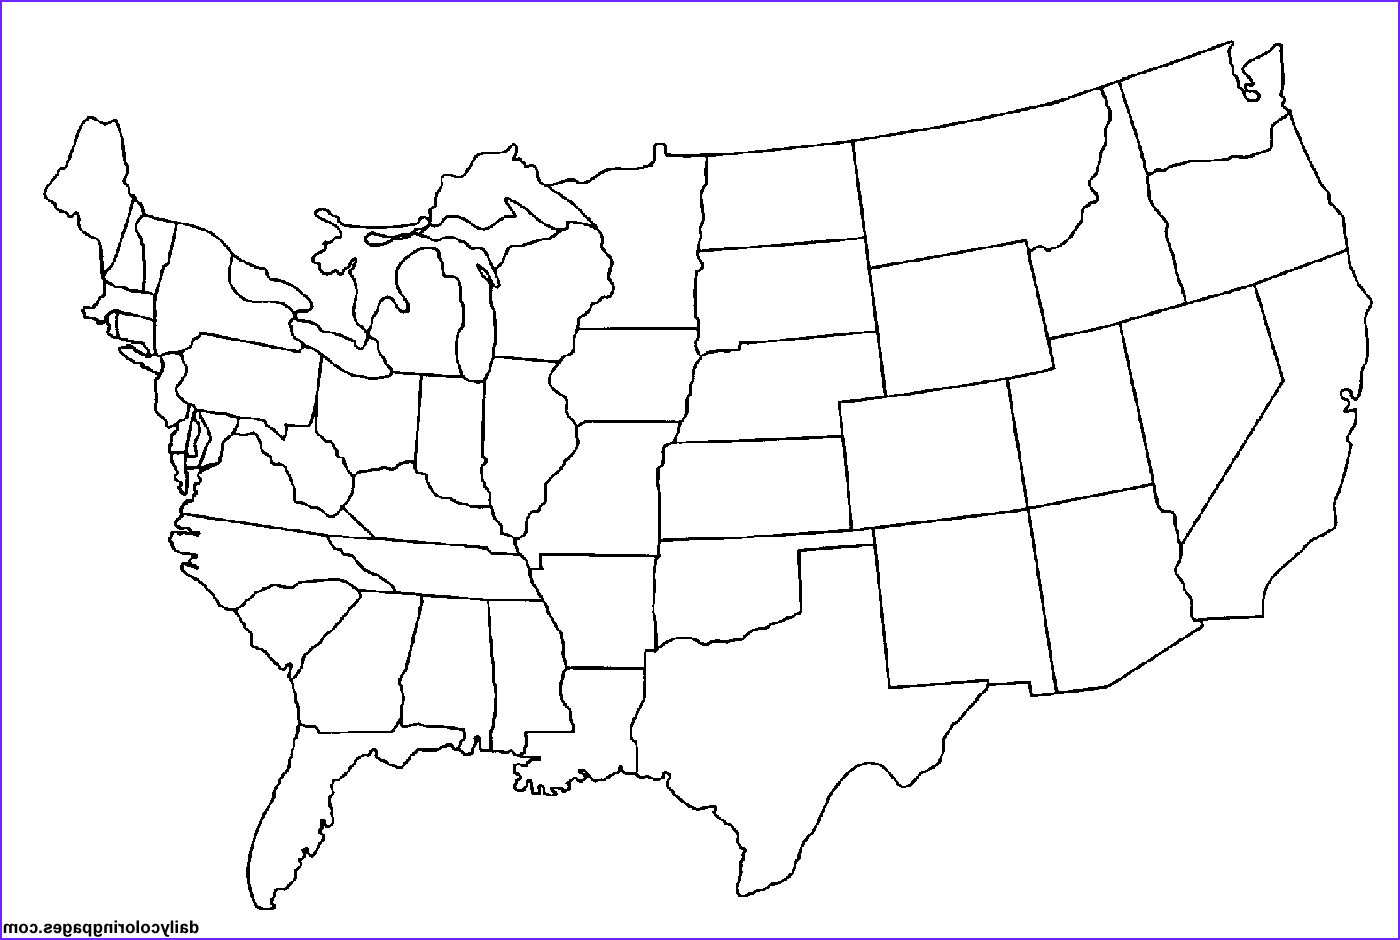 Coloring Maps Of Usa Cool Images 10 Way to Keep Kids Happy In the Car